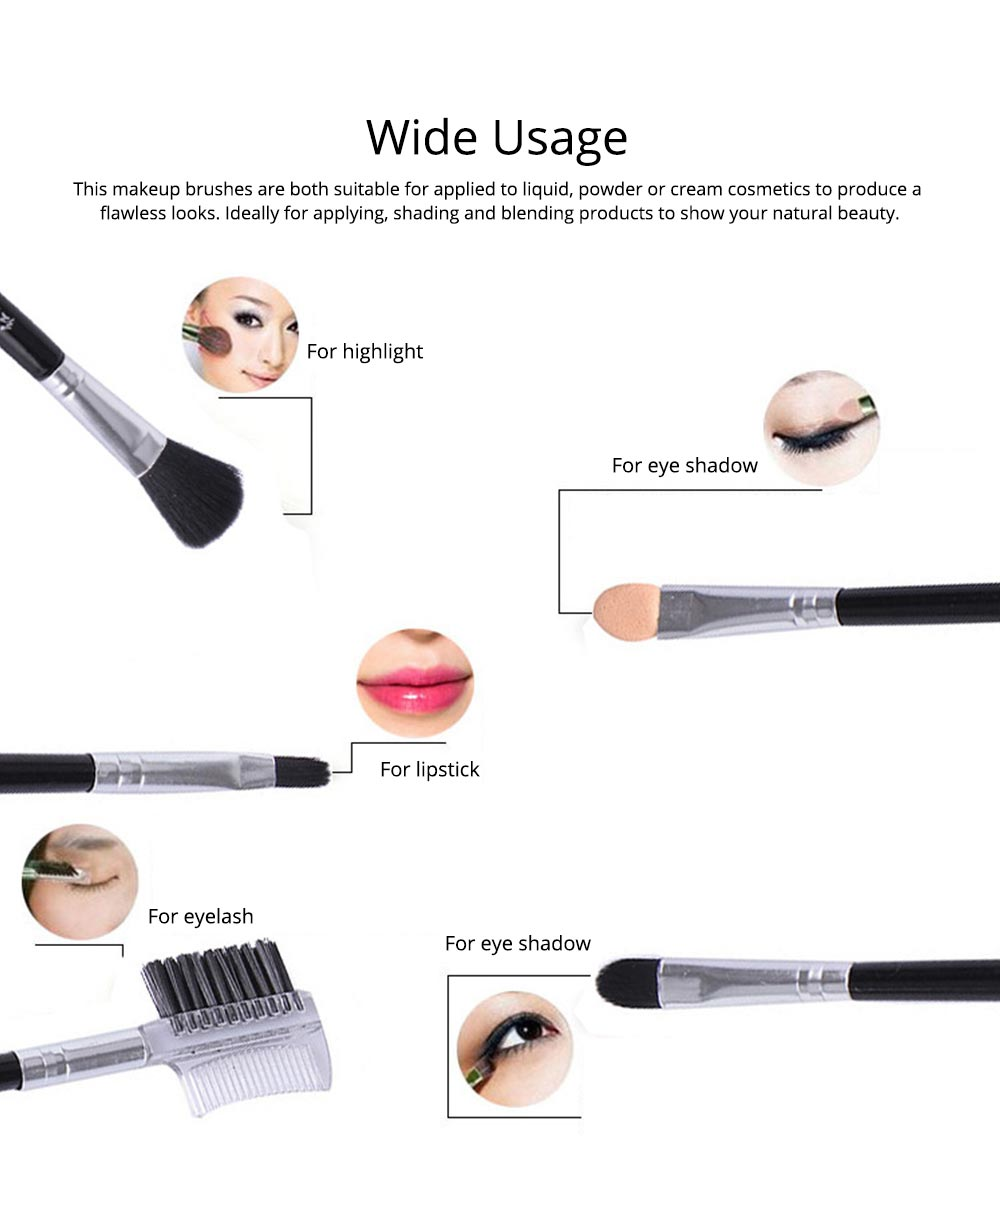 5 Sets of Makeup Brush Set with Texture Handle, Blush Foundation Brush Lips Brush Eyebrow Brush 5